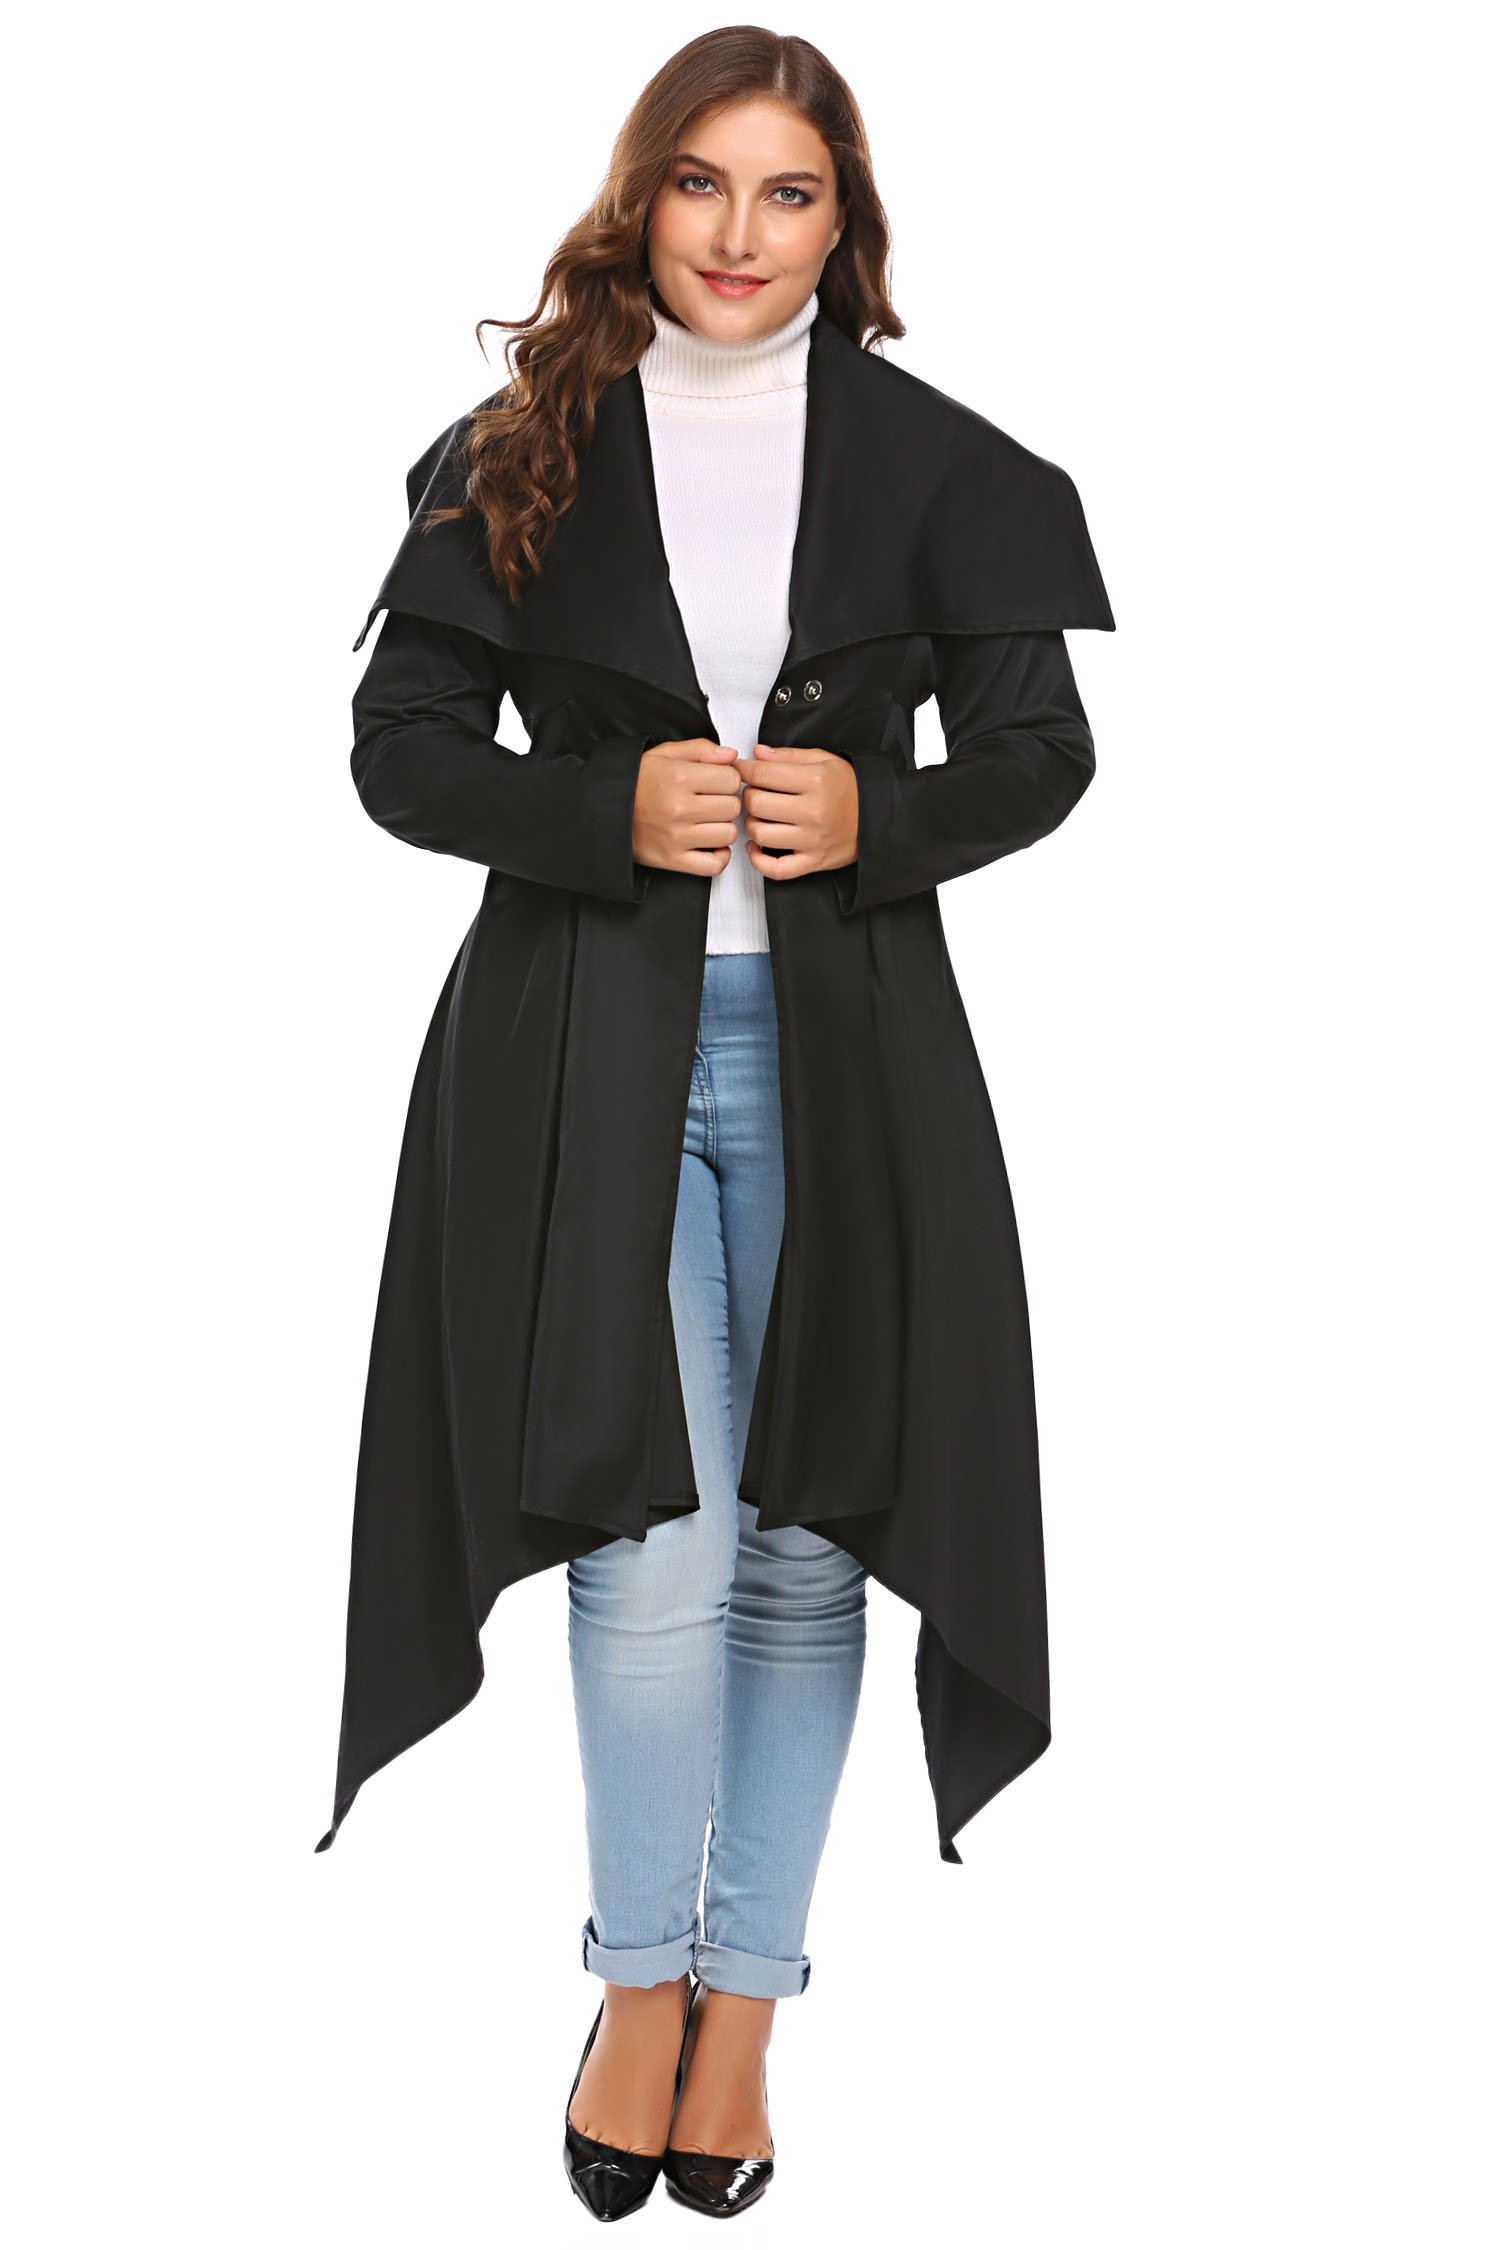 Involand Women Plus Size One-Button Lapel Long Sleeve Asymmetrical Trench Coat